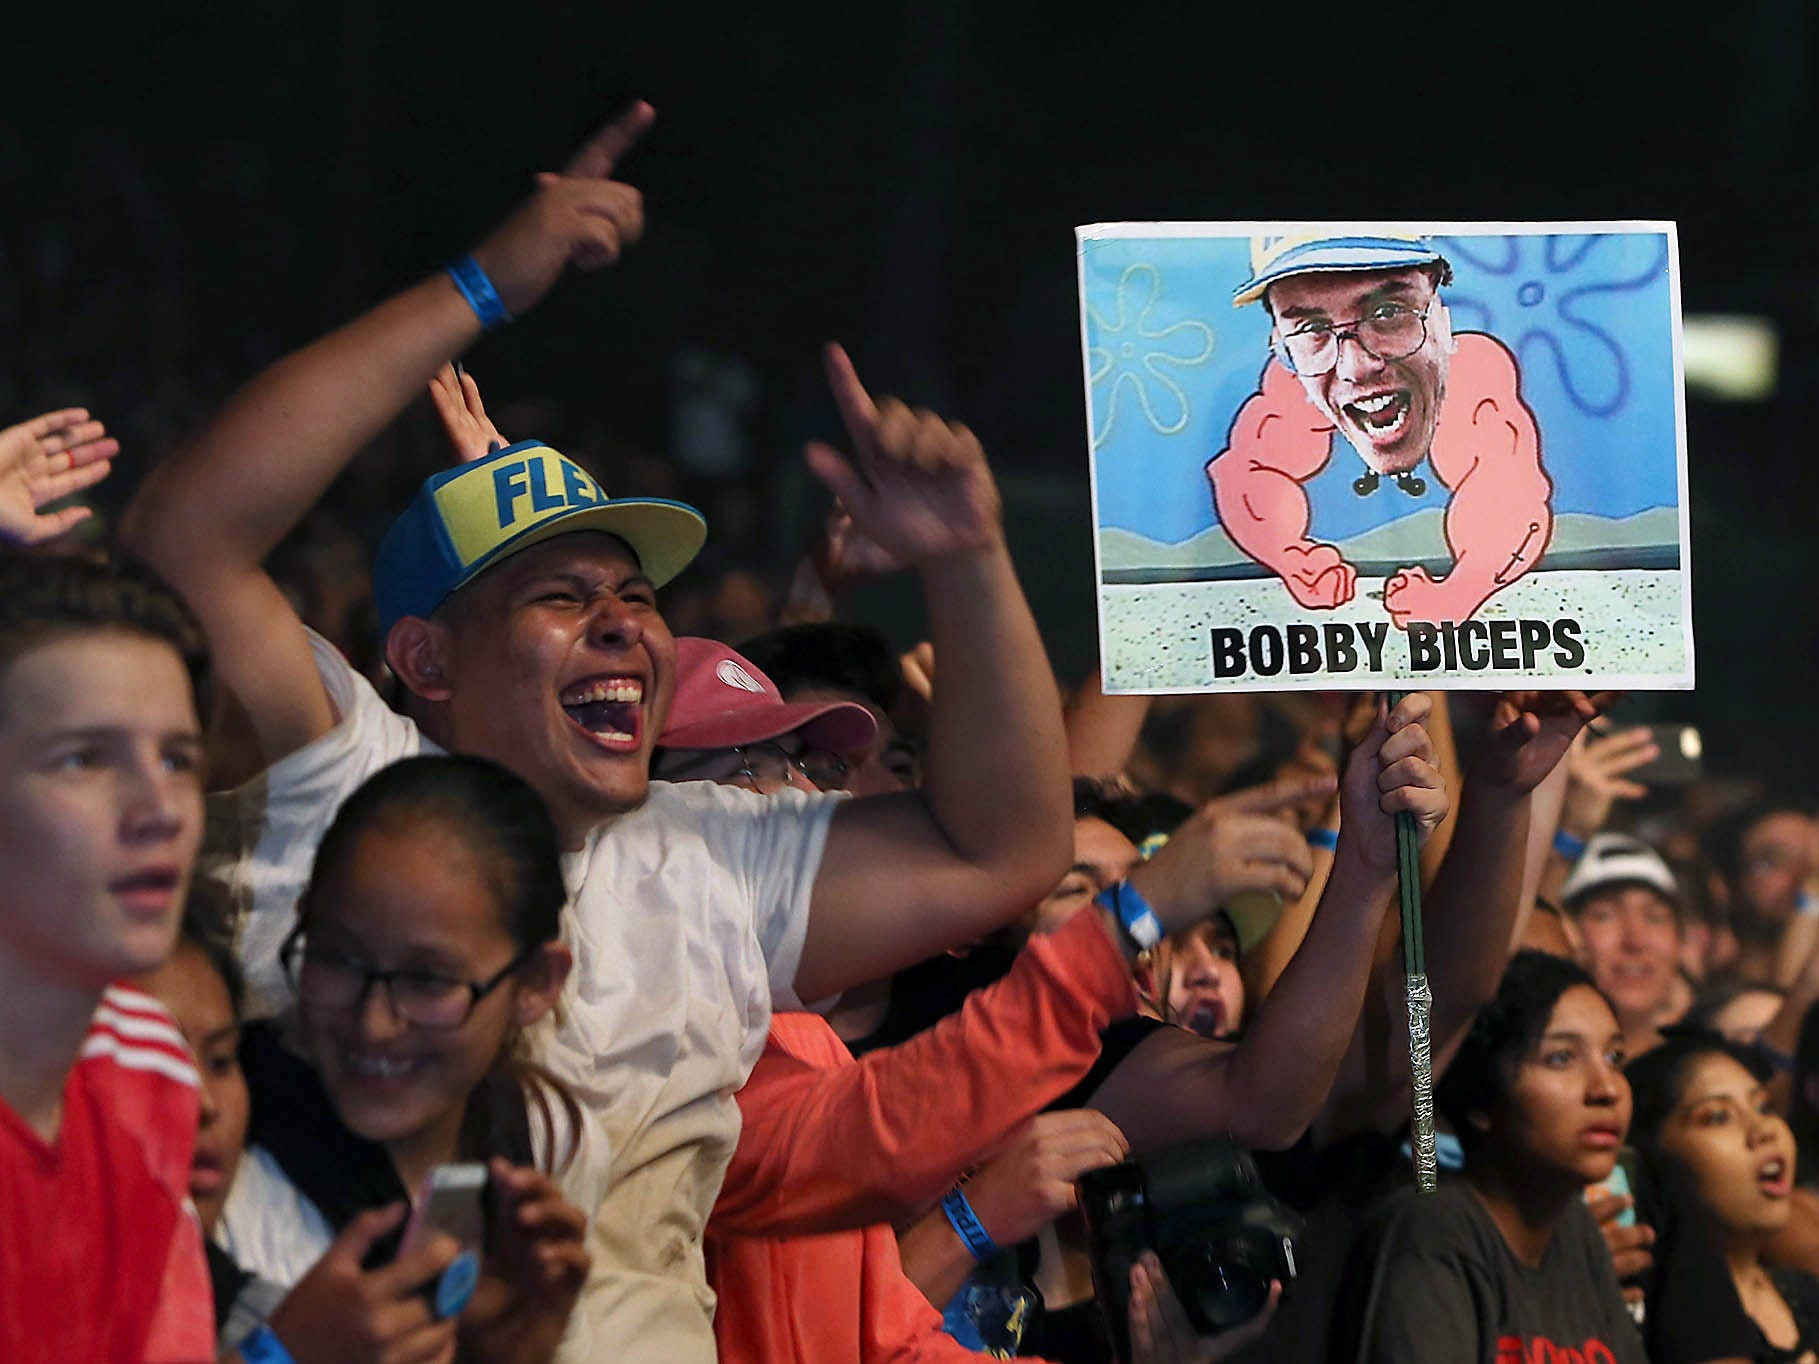 Fans cheers Logic as he performs during The Bobby Tarantino vs Everybody Tour at Ak-Chin Pavilion in Phoenix on Wednesday, July 25, 2018.